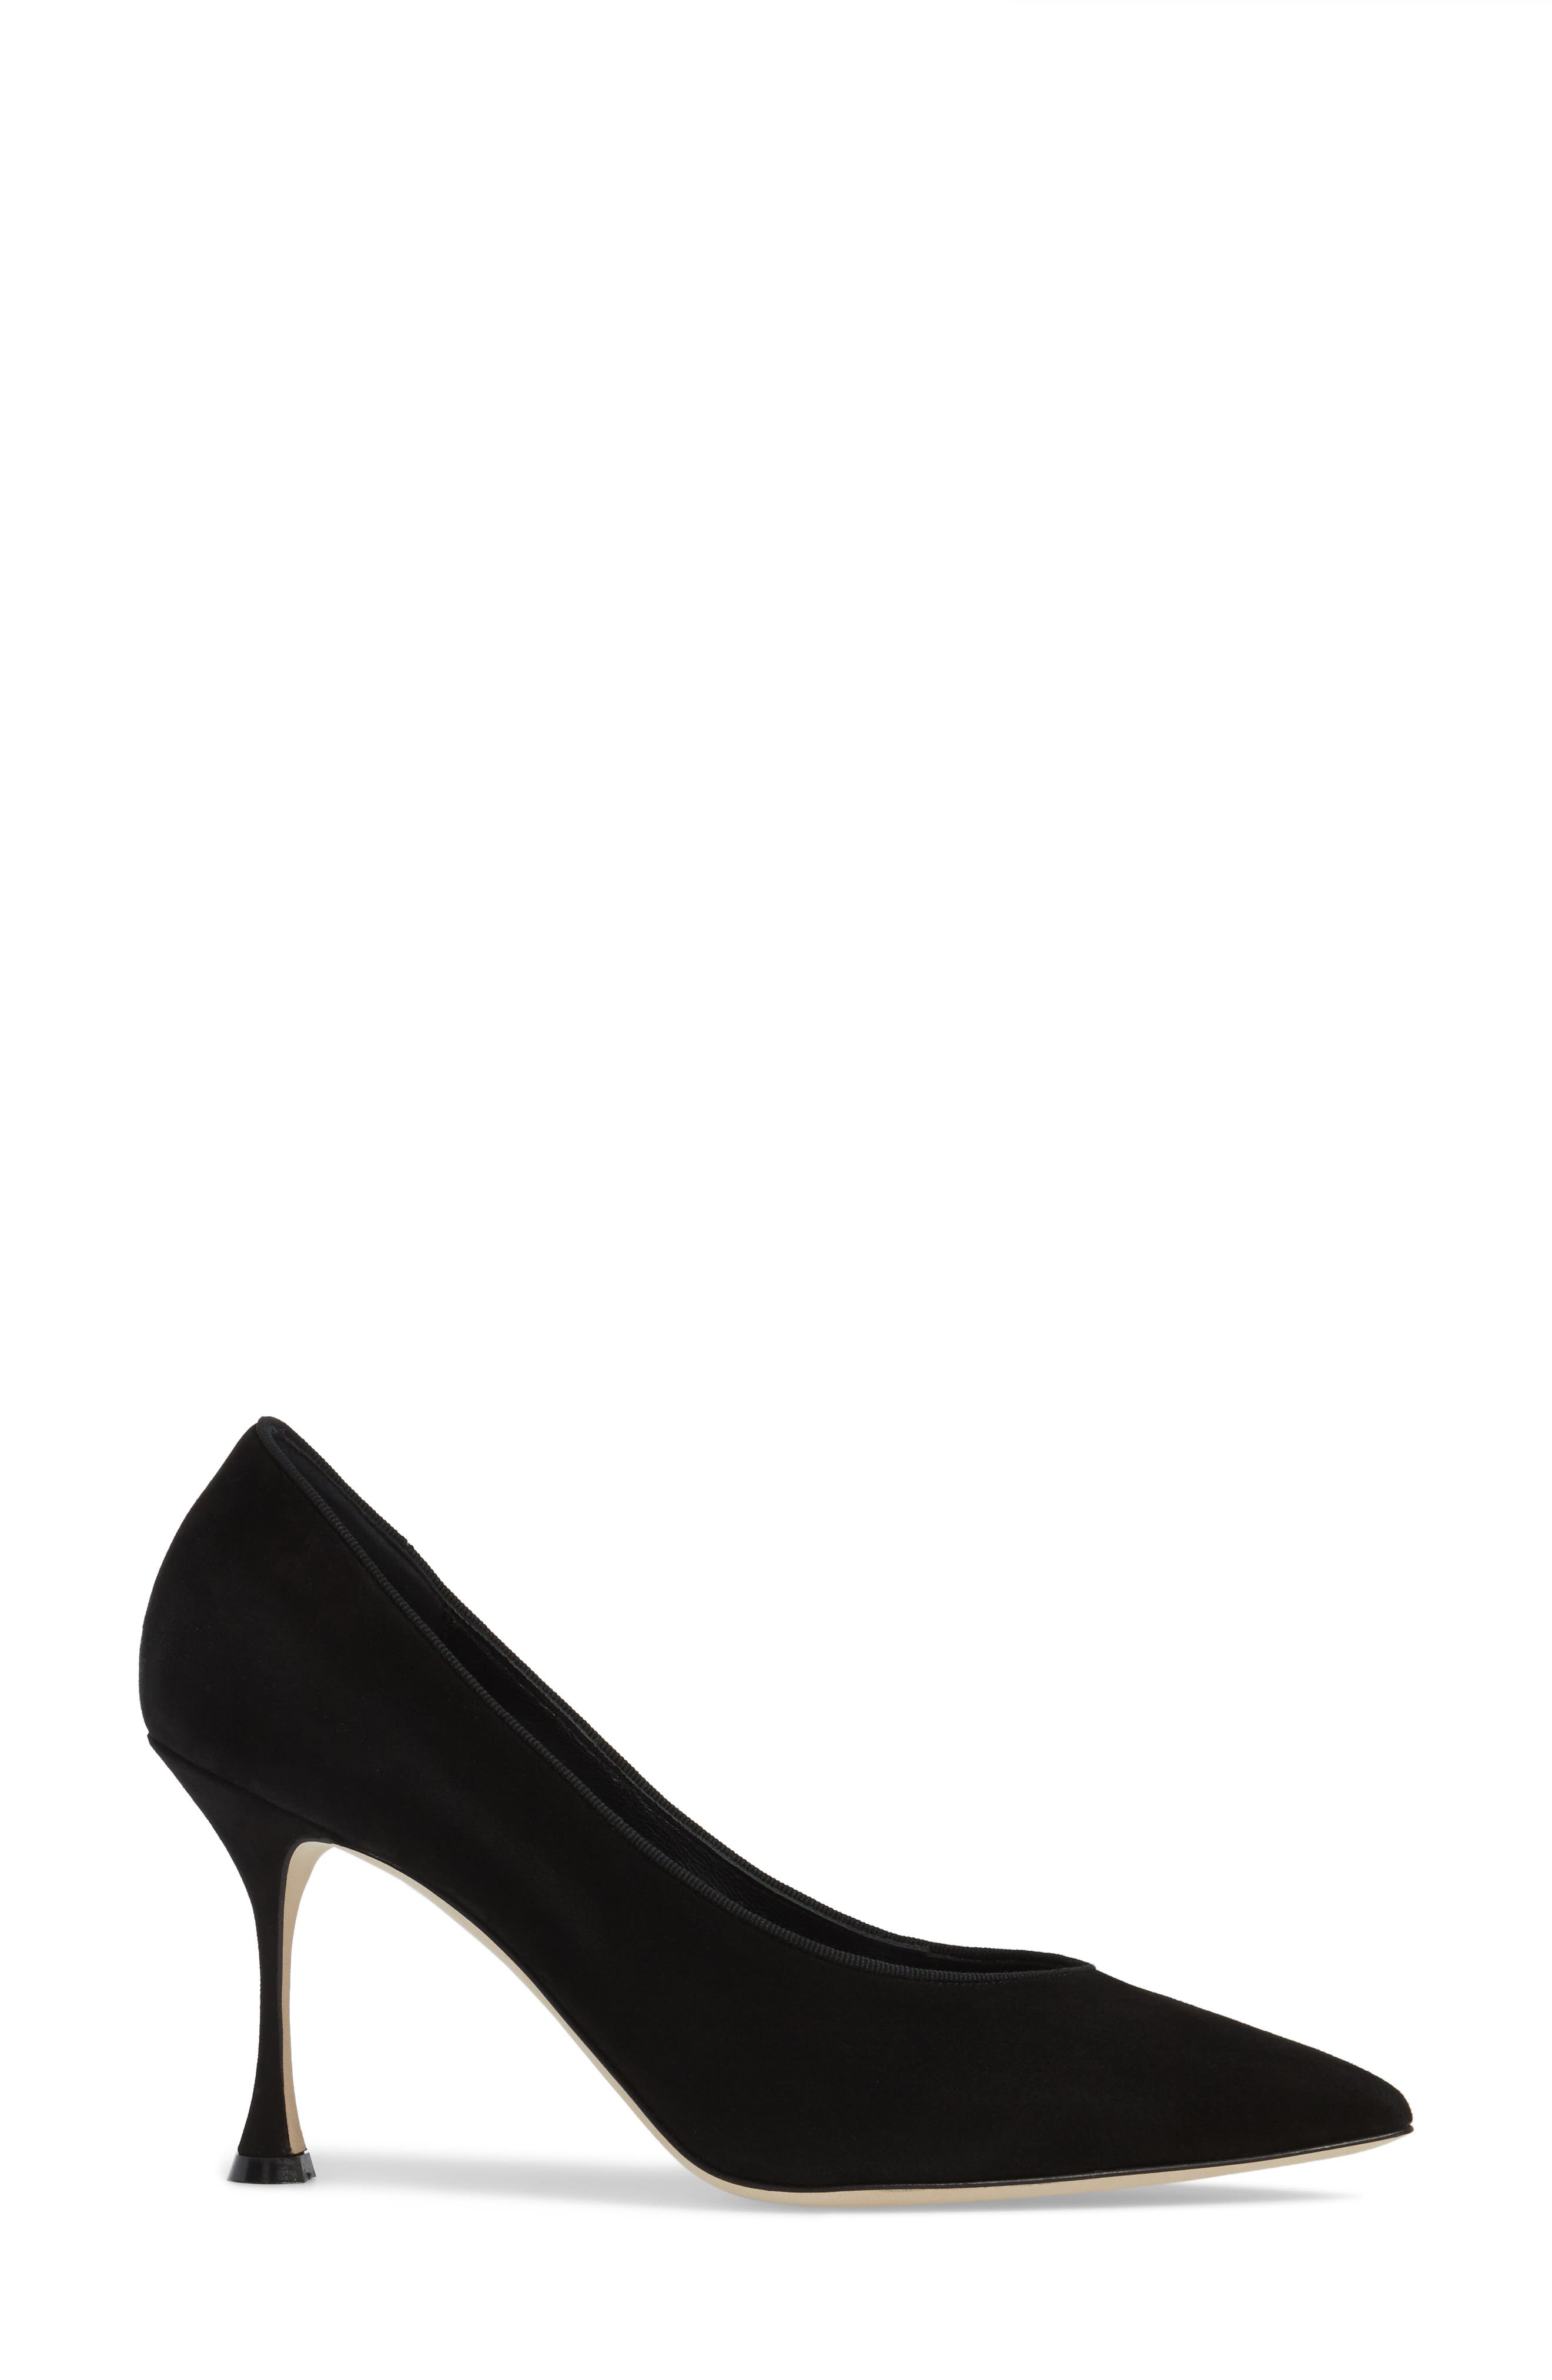 Urgenze Pointy Toe Pump,                             Alternate thumbnail 3, color,                             Black Suede